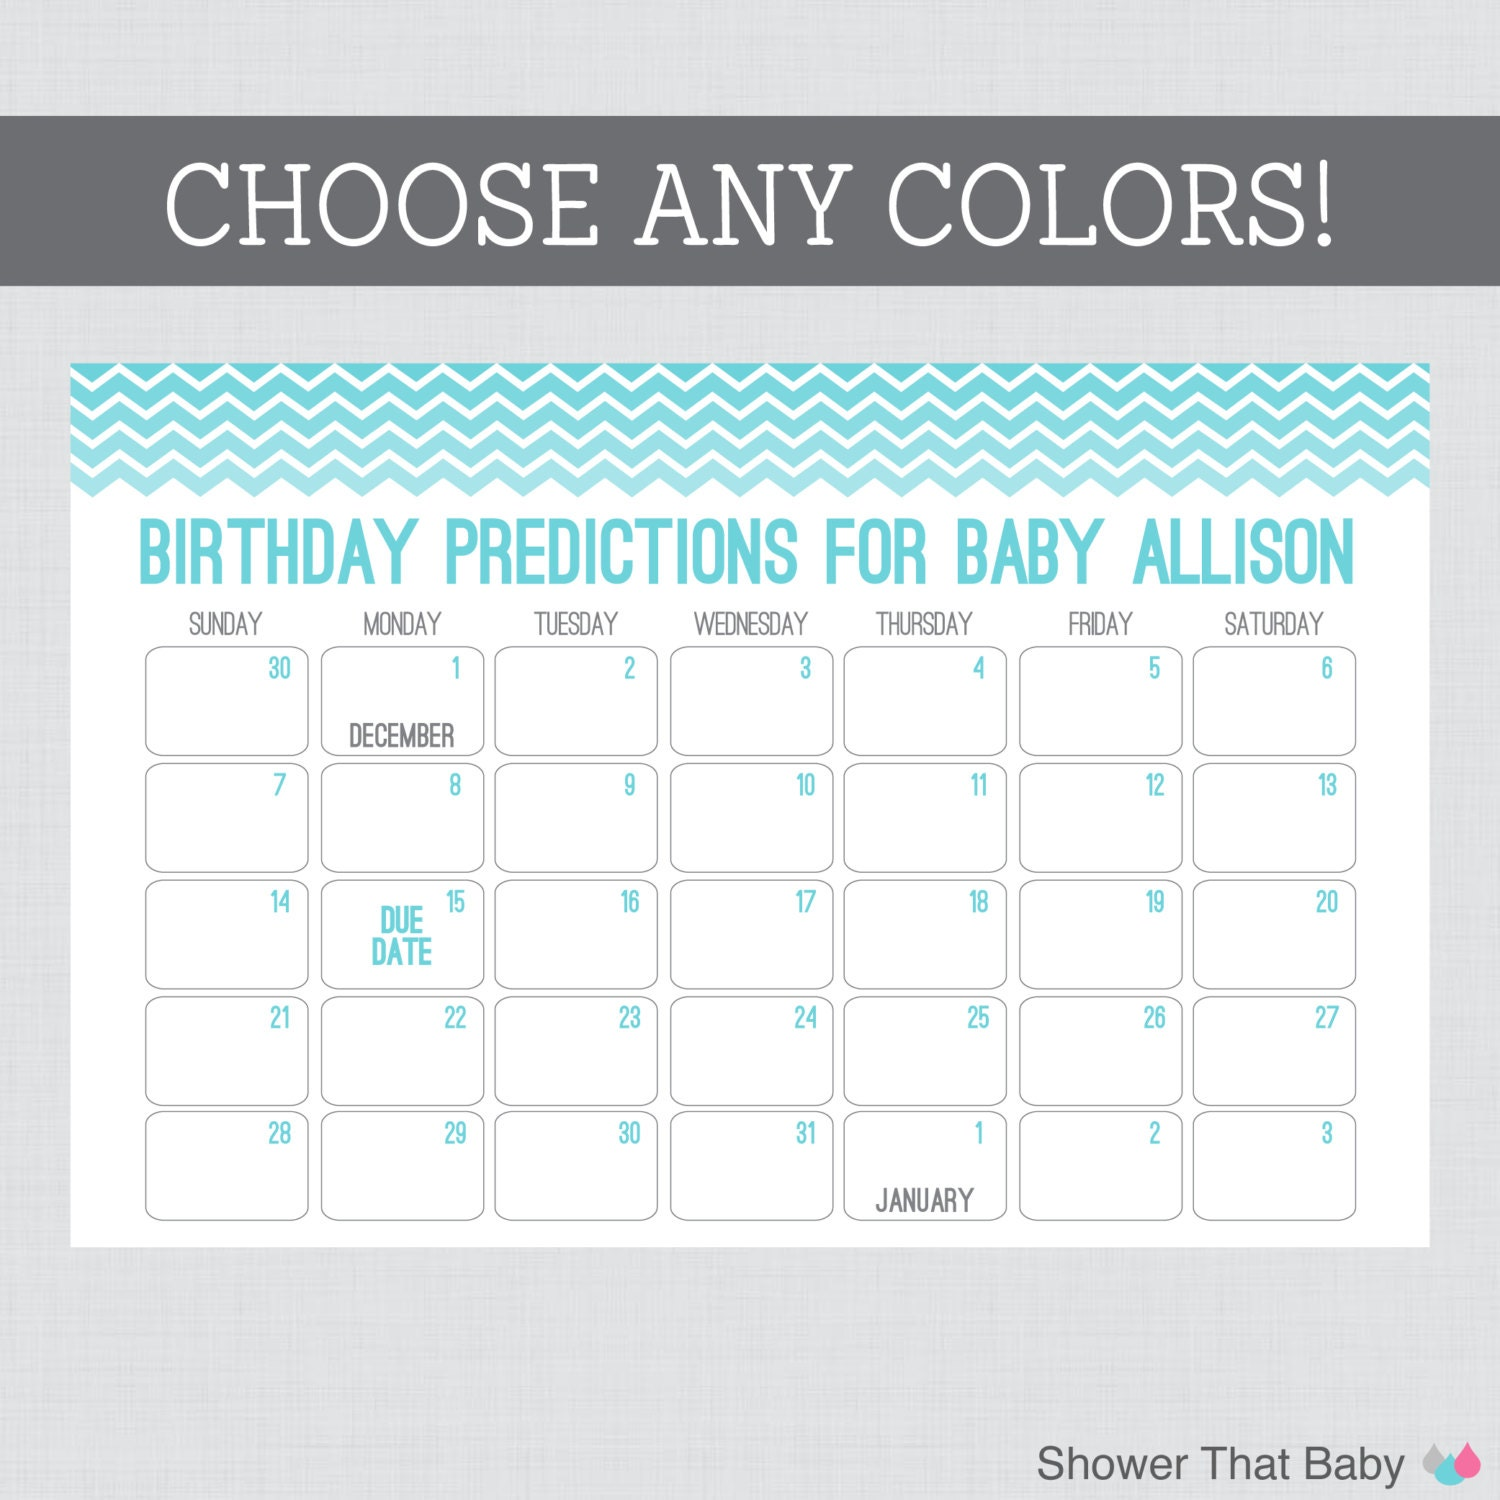 baby birthday predictions printable chevron baby by showerthatbaby